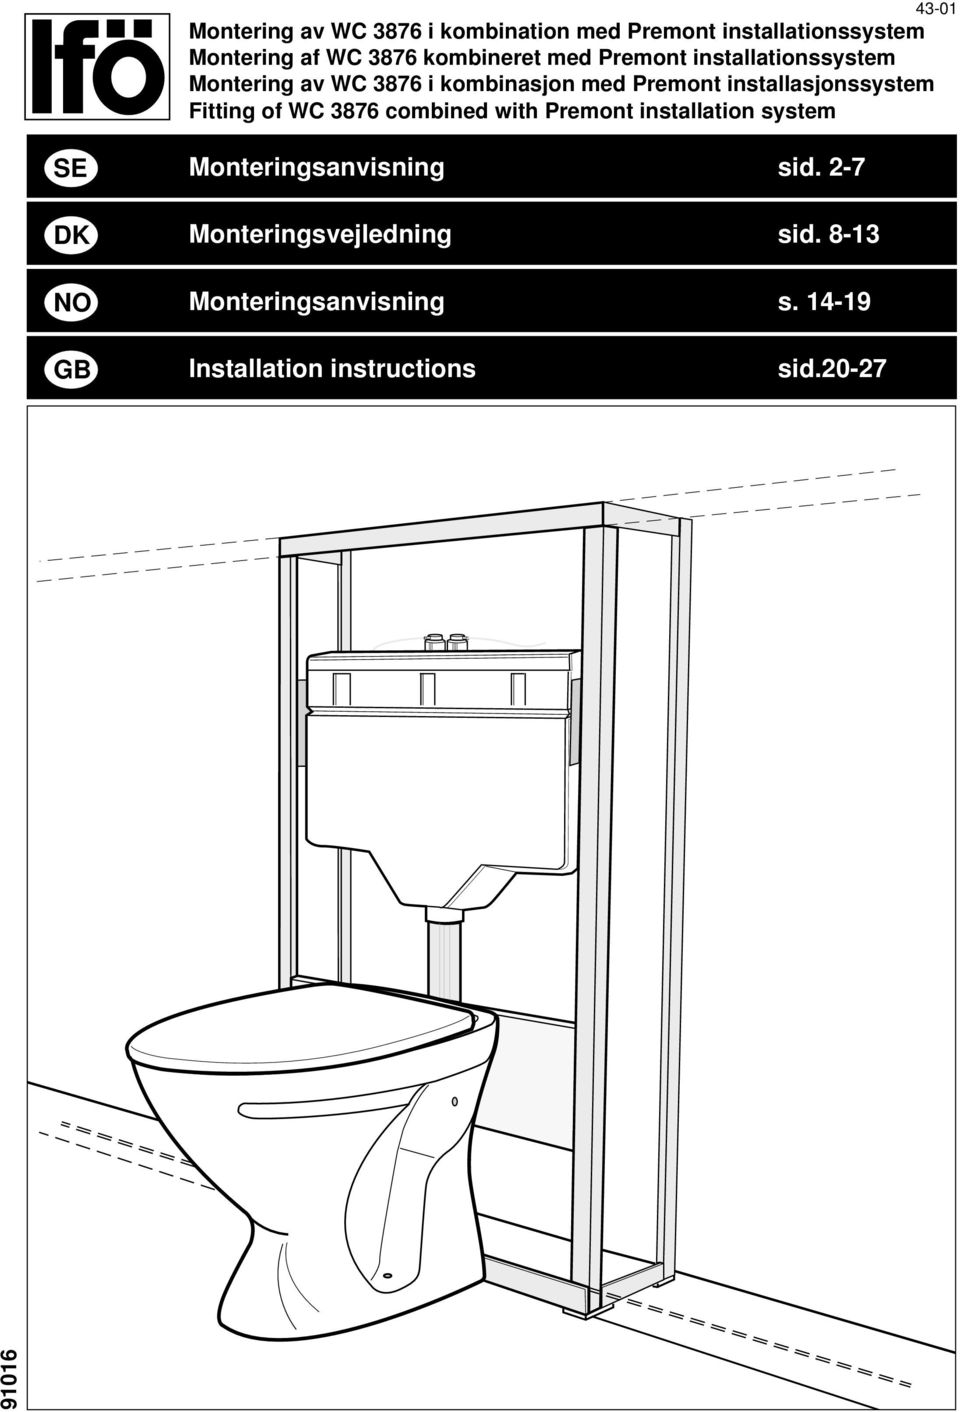 installasjonssystem Fitting of WC 3876 combined with Premont installation system SE